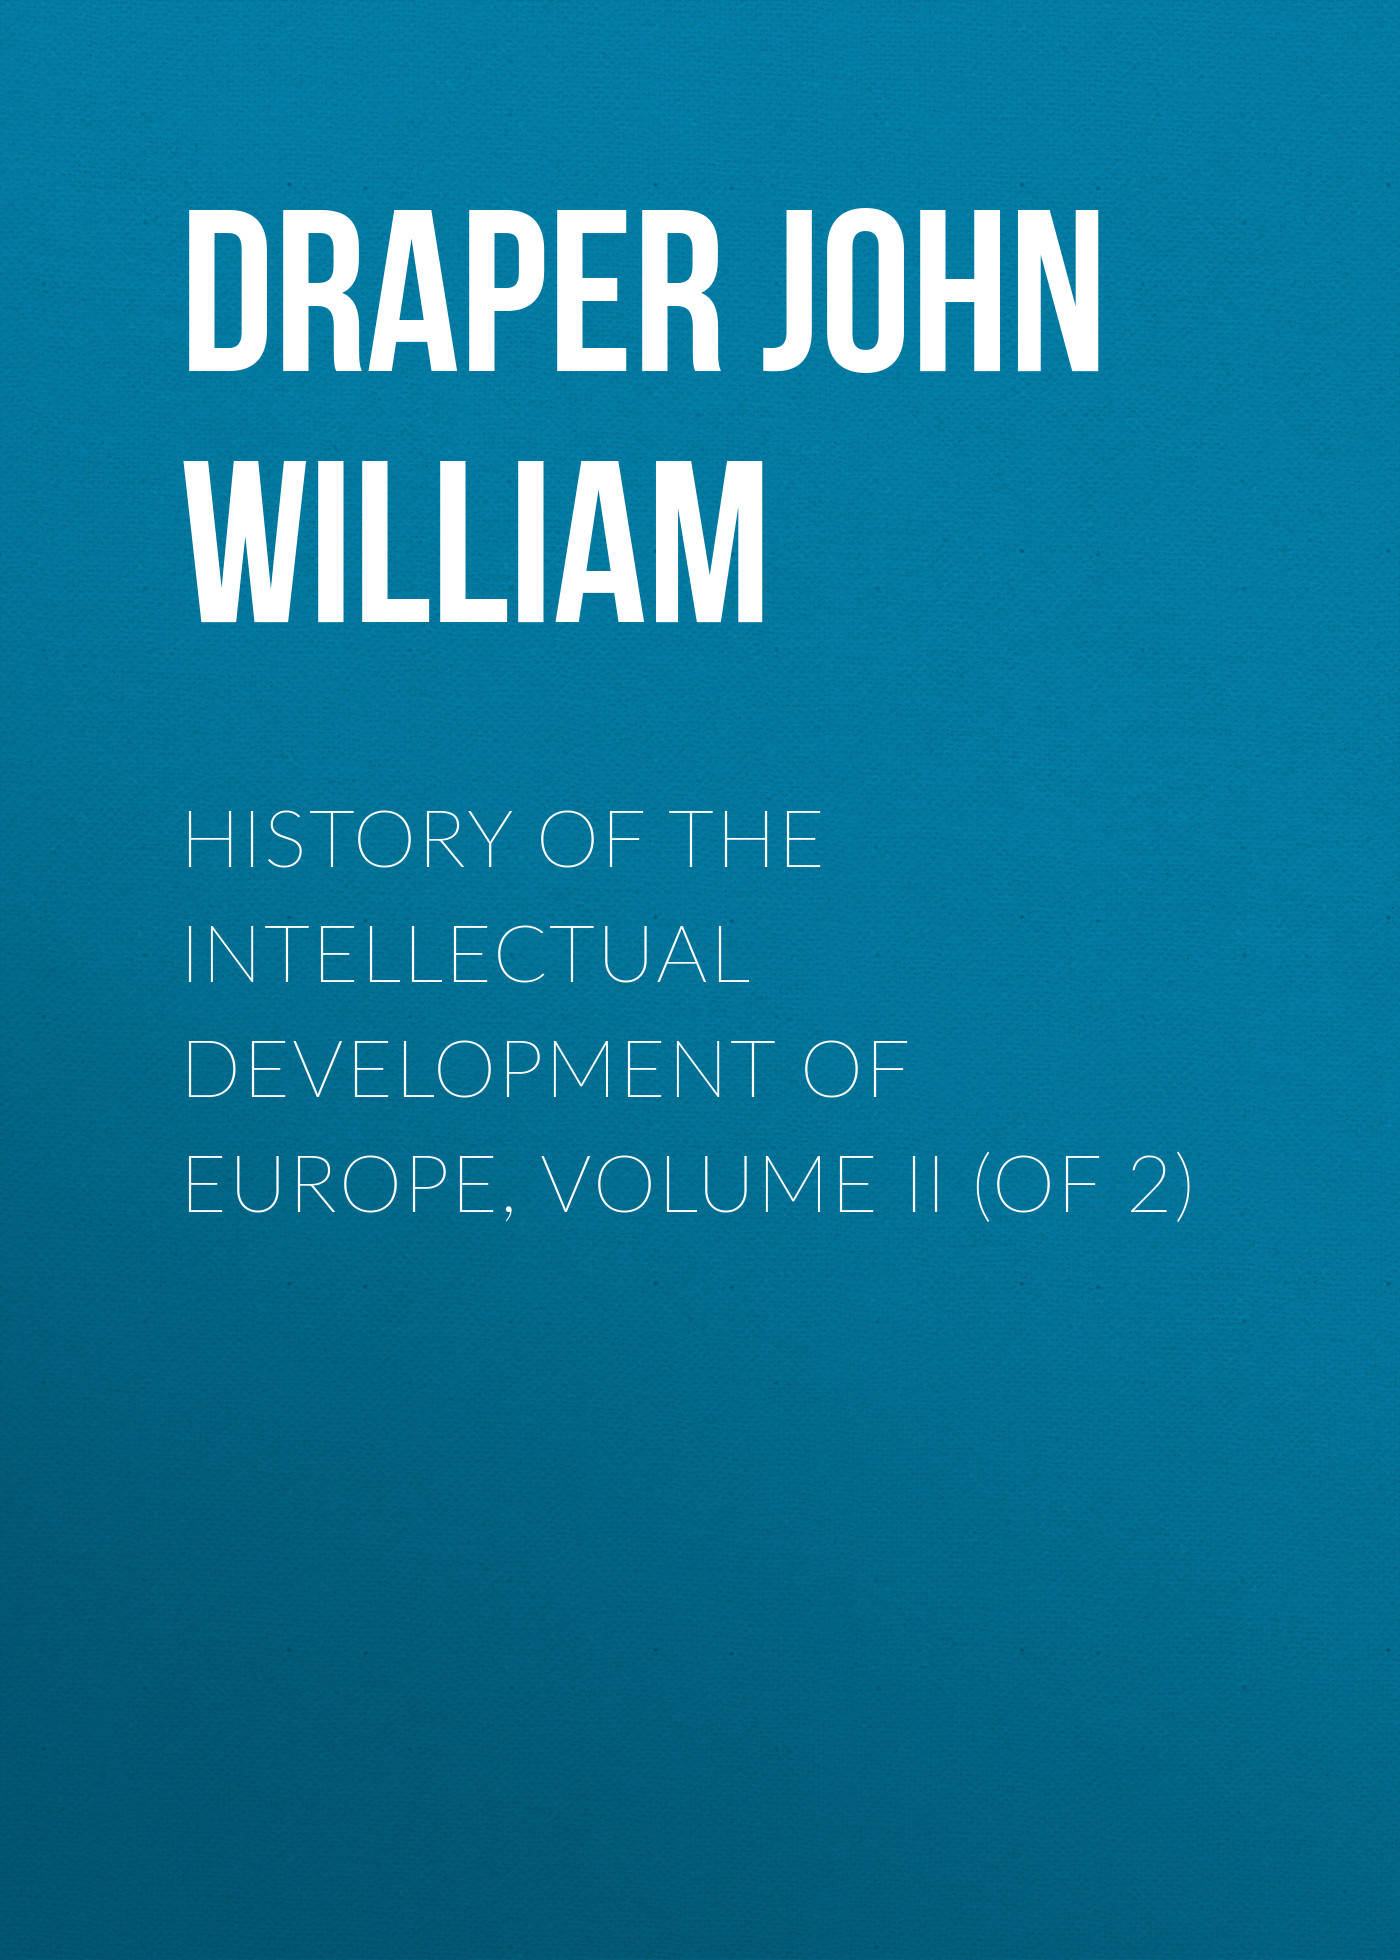 Draper John William History of the Intellectual Development of Europe, Volume II (of 2) an environmental history of medieval europe